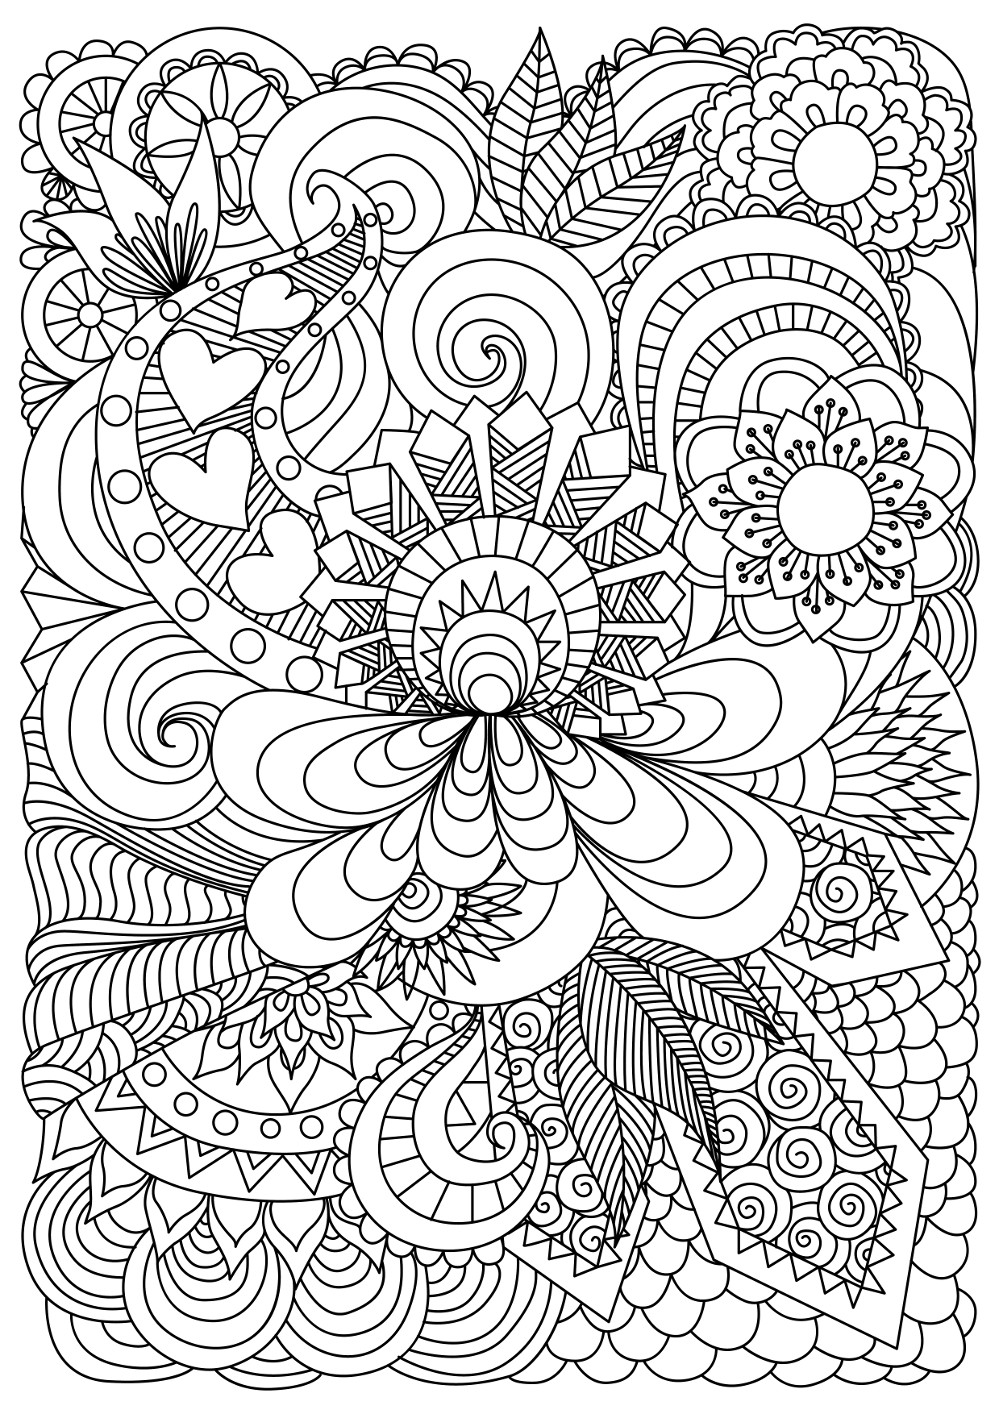 coloring pages for adults patterns large print adult coloring book 4 big beautiful patterns for pages coloring adults